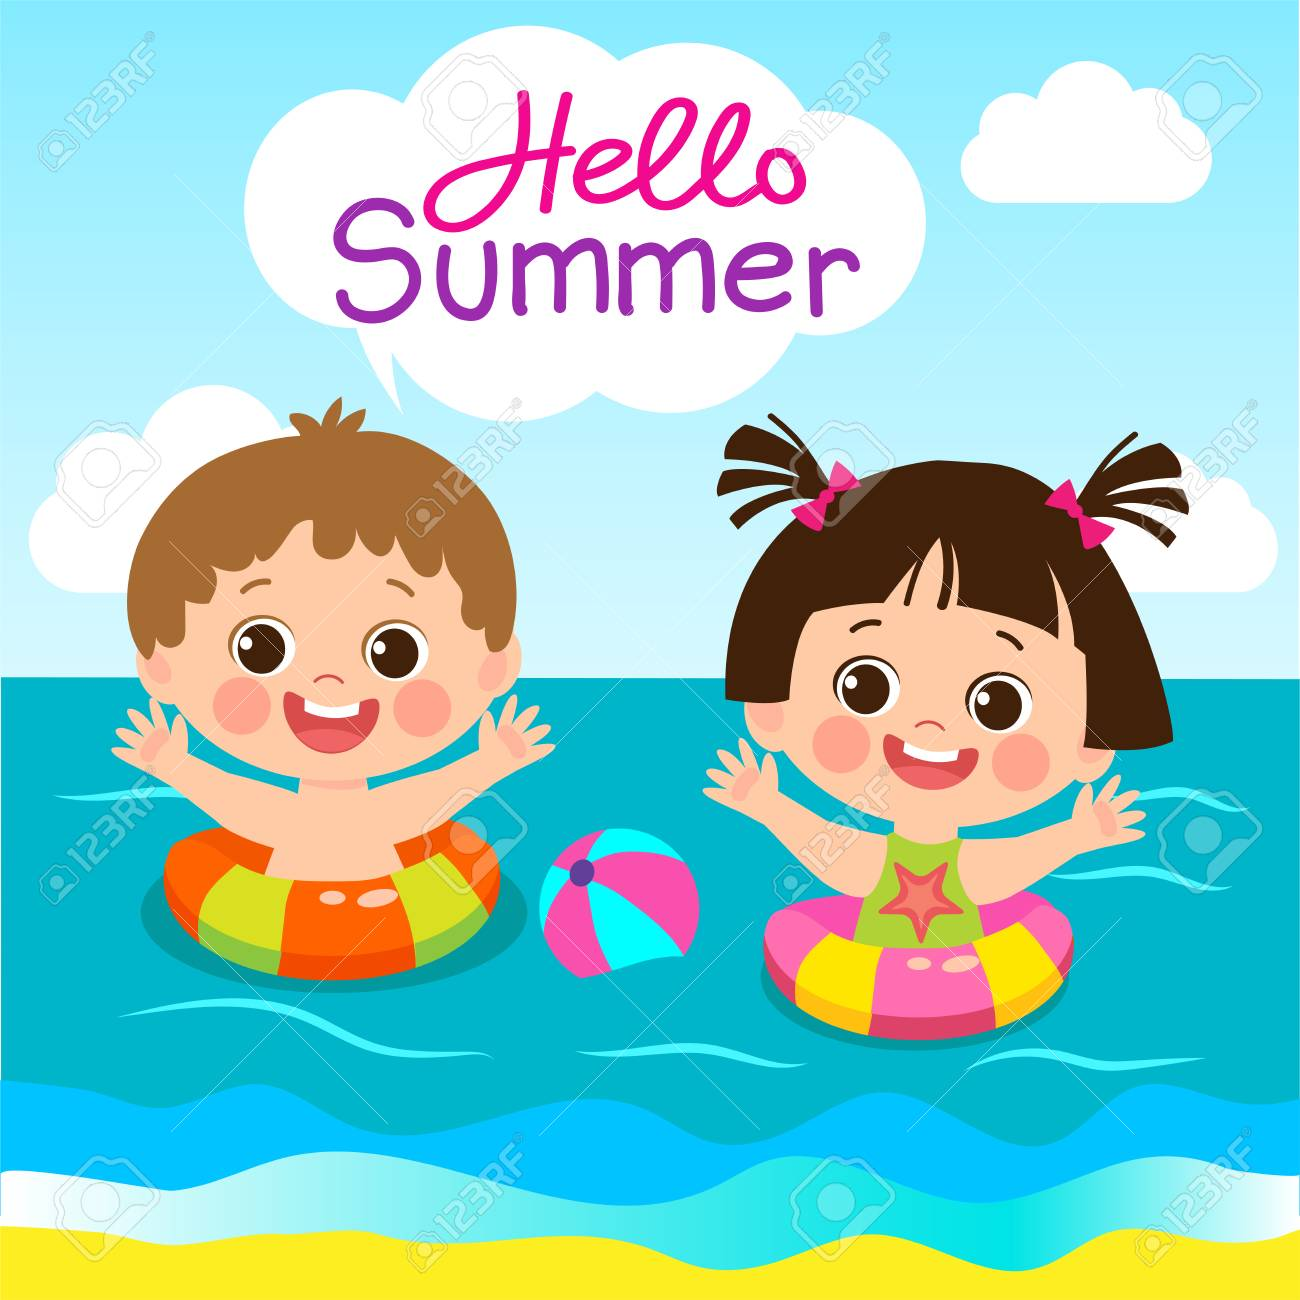 Summer Activities For Kids Clipart 6 Clipart Station